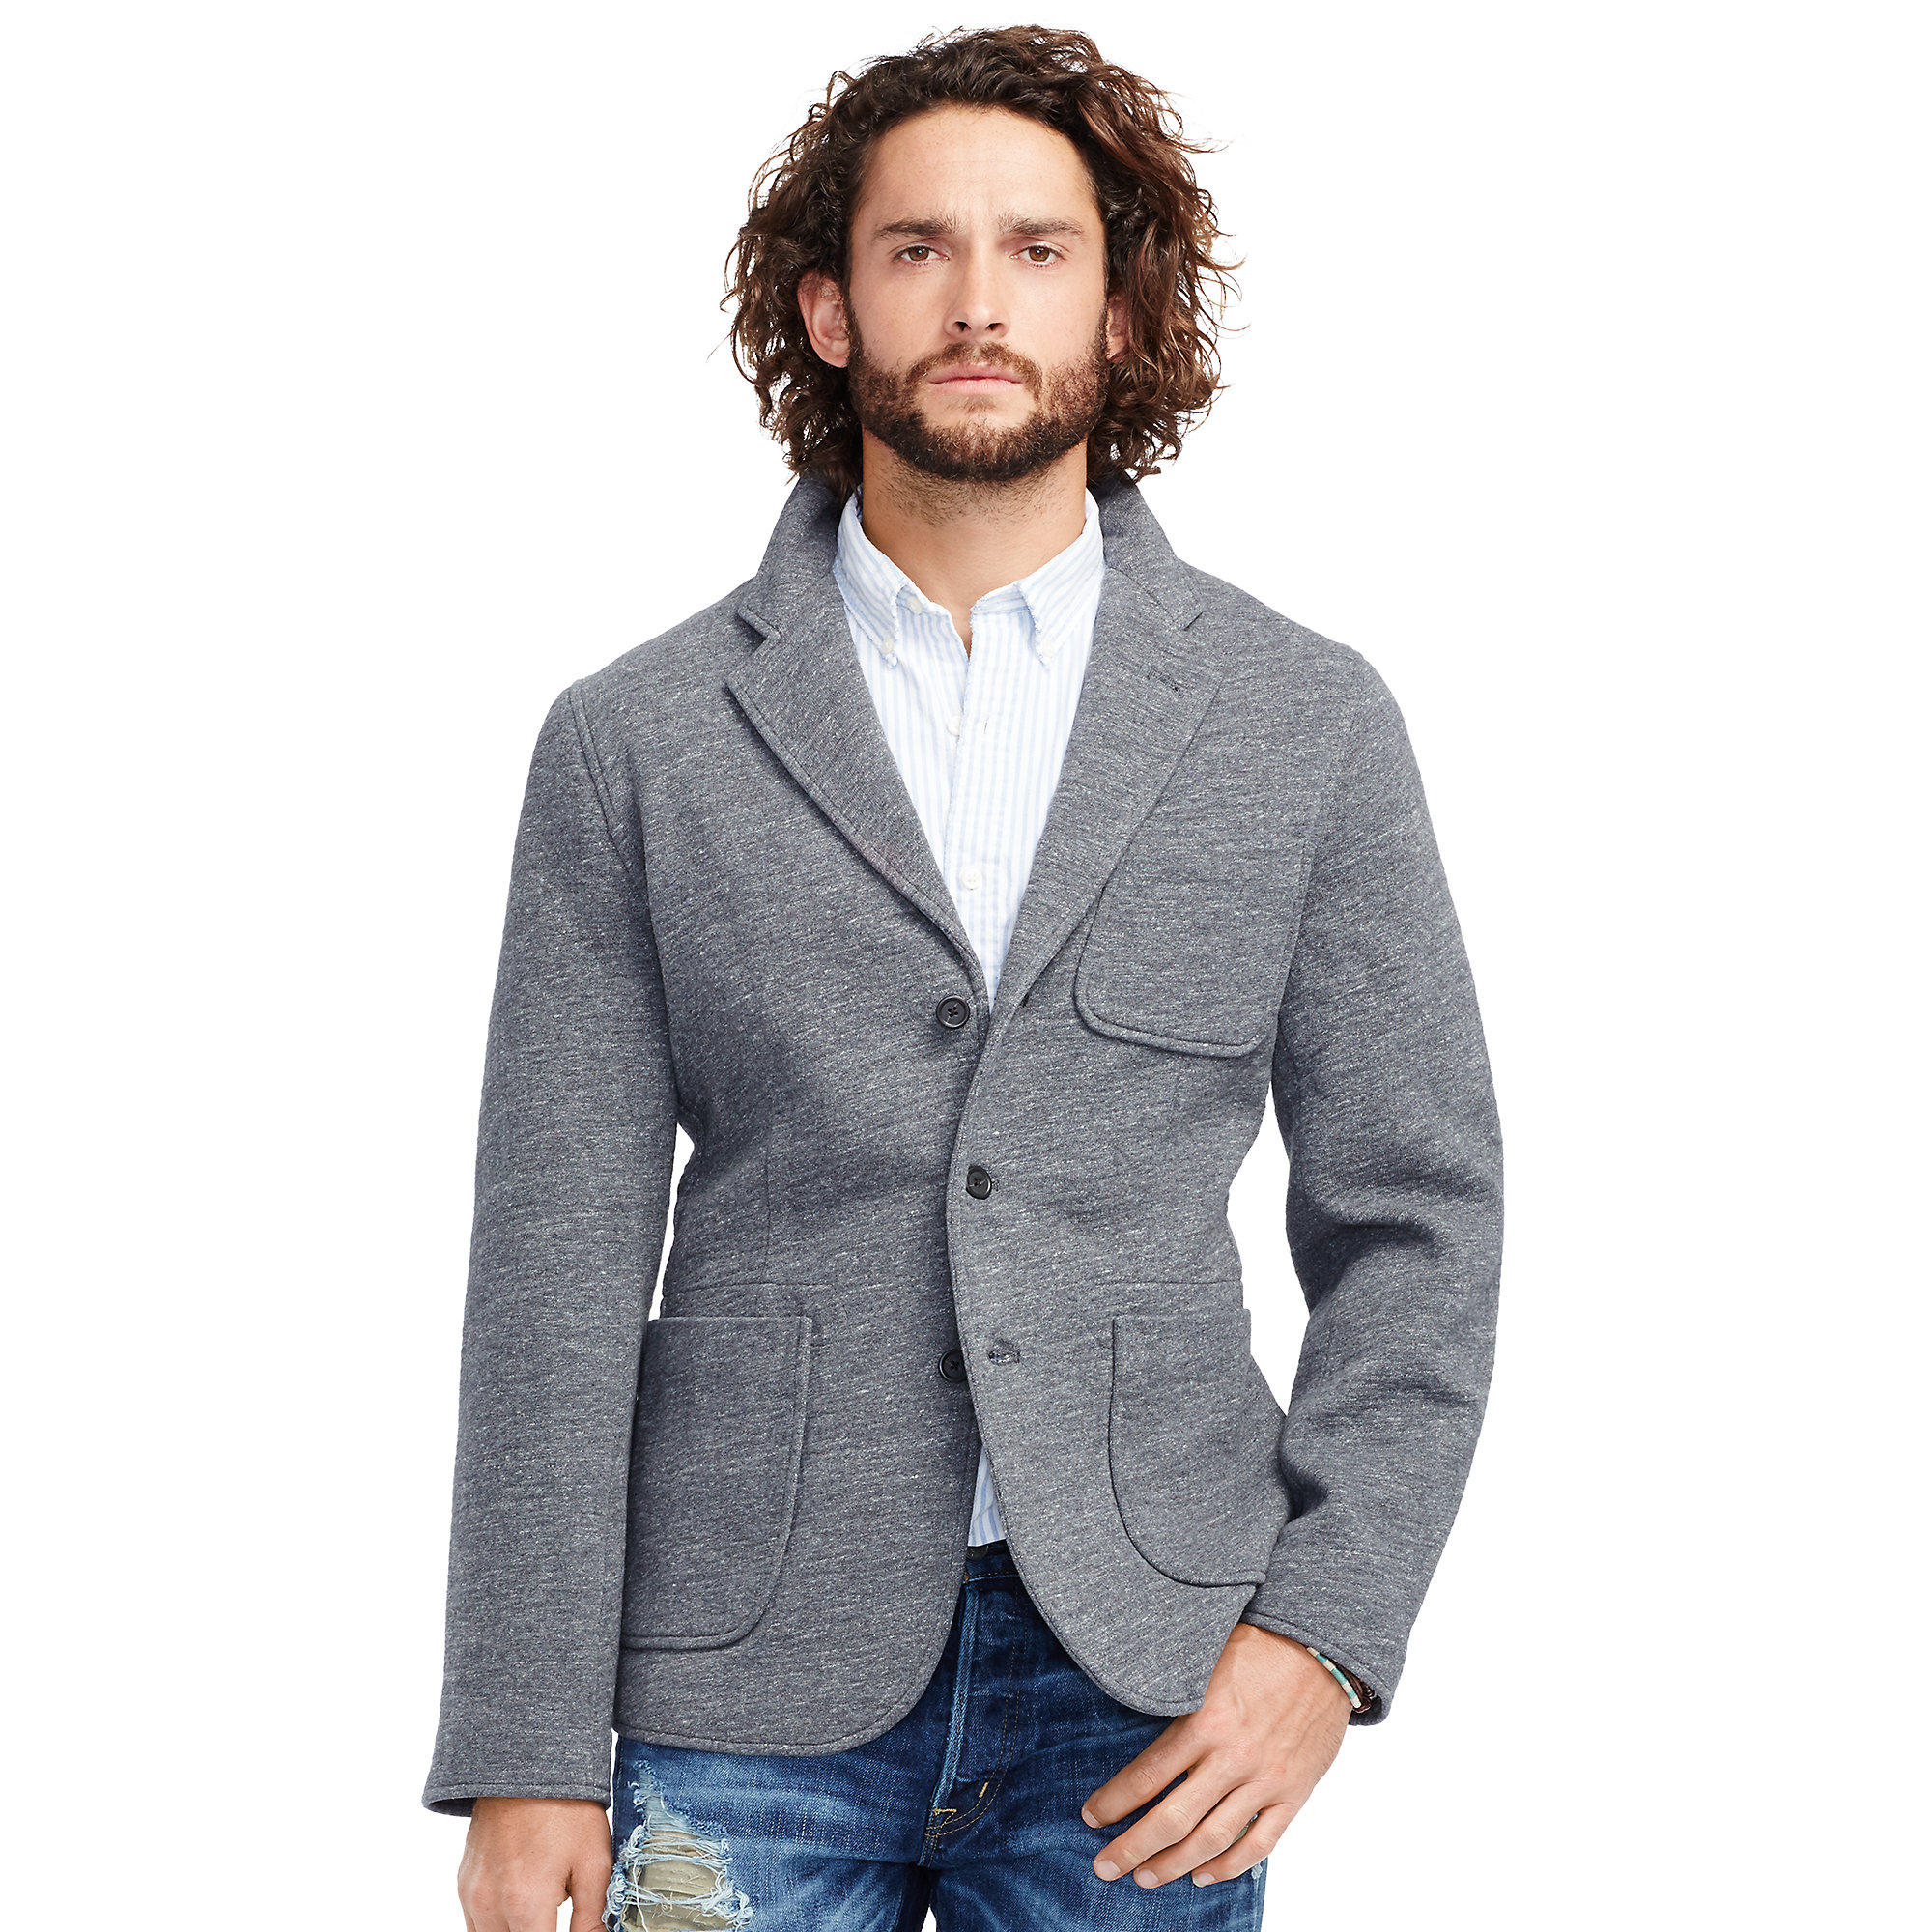 Denim & supply ralph lauren Heathered Knit Cotton Blazer in Gray ...